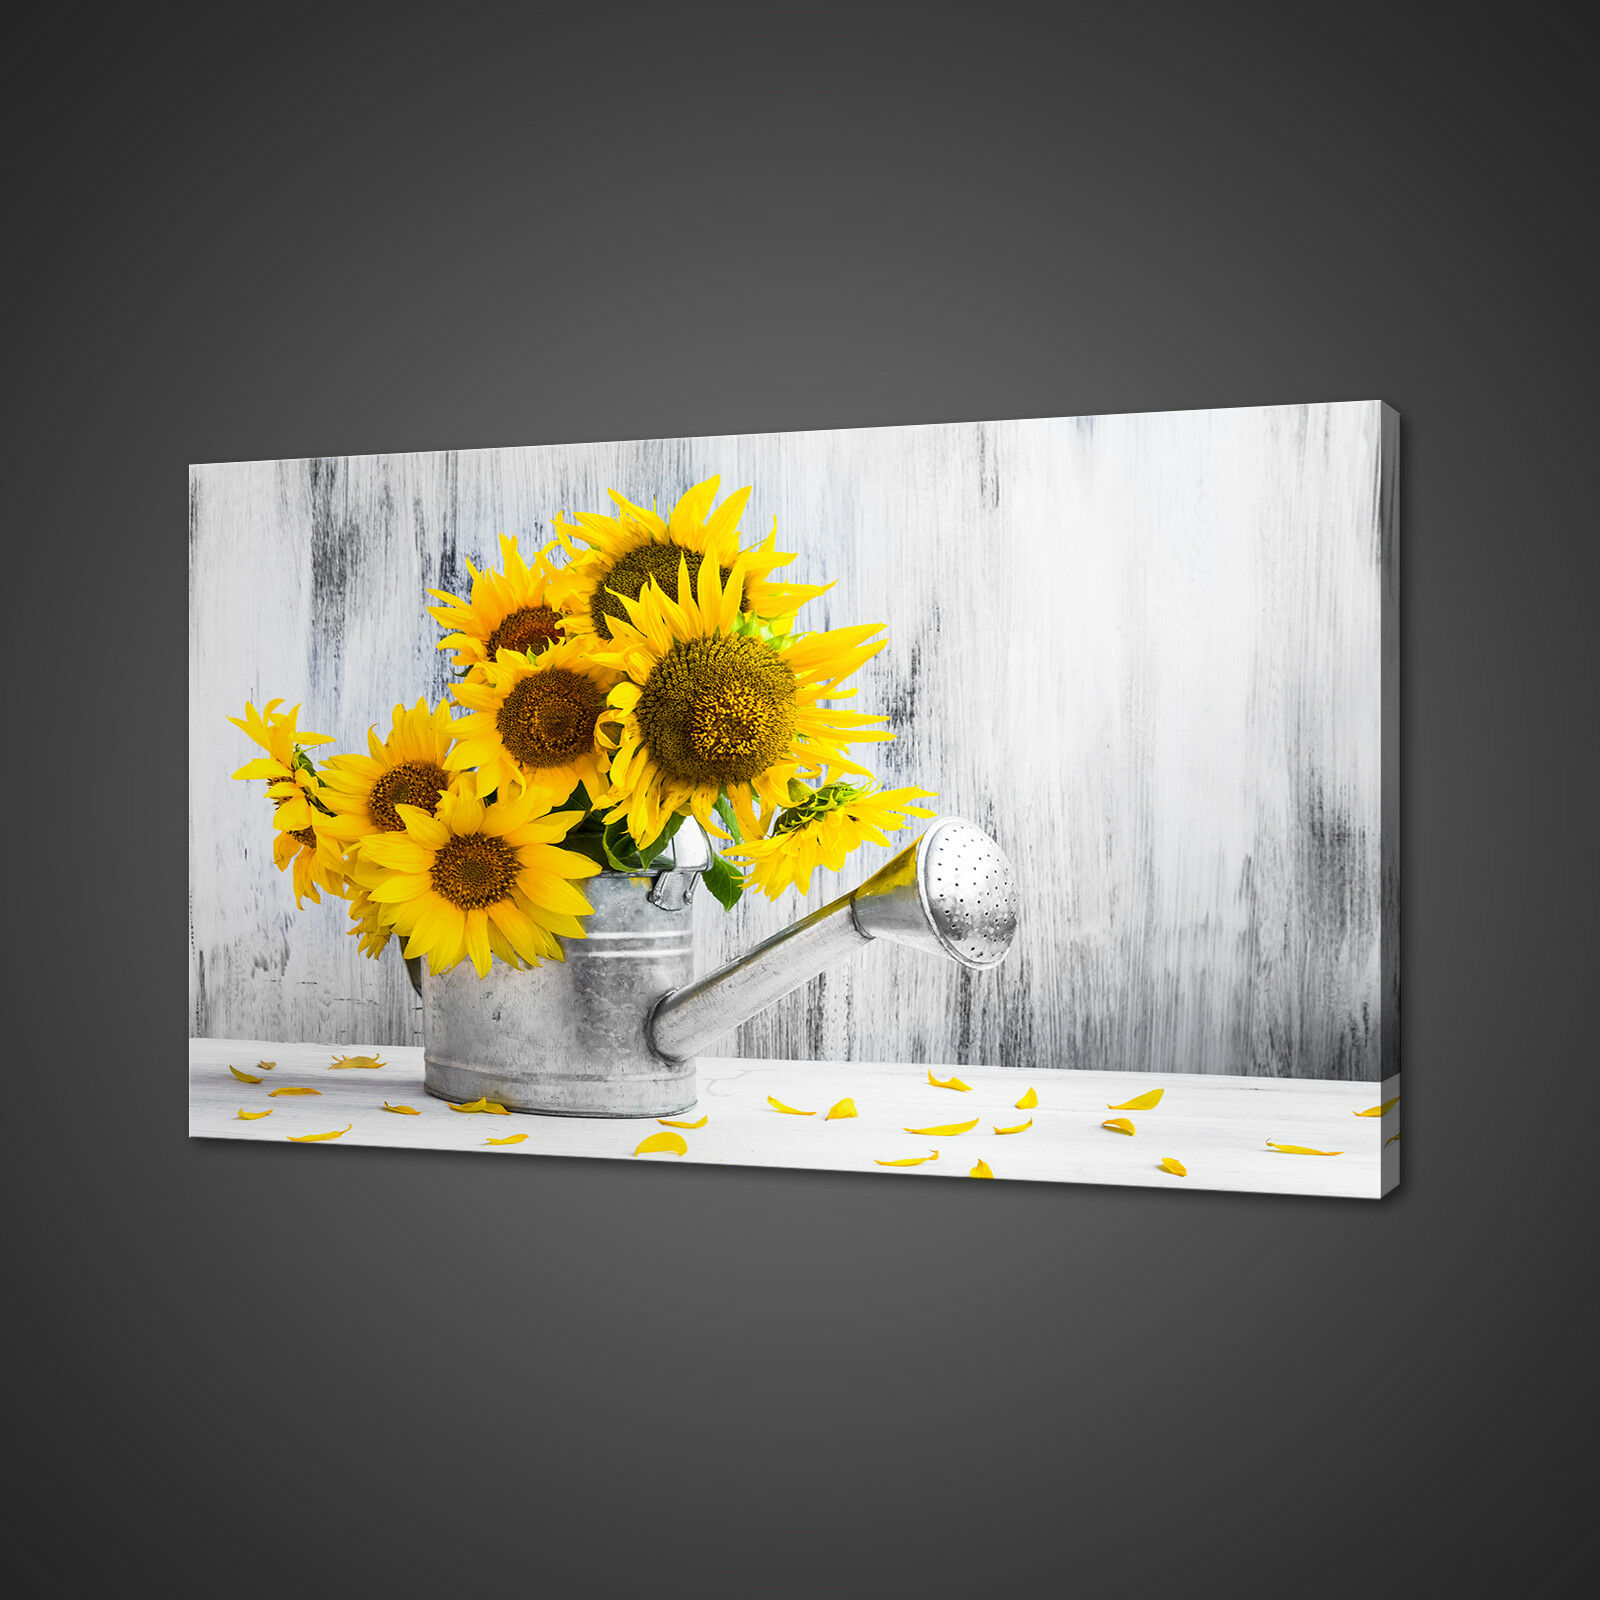 SUNblumen WATERING CAN CANVAS PICTURE drucken wand kunst zuhause DECOR FREE DELIVERY